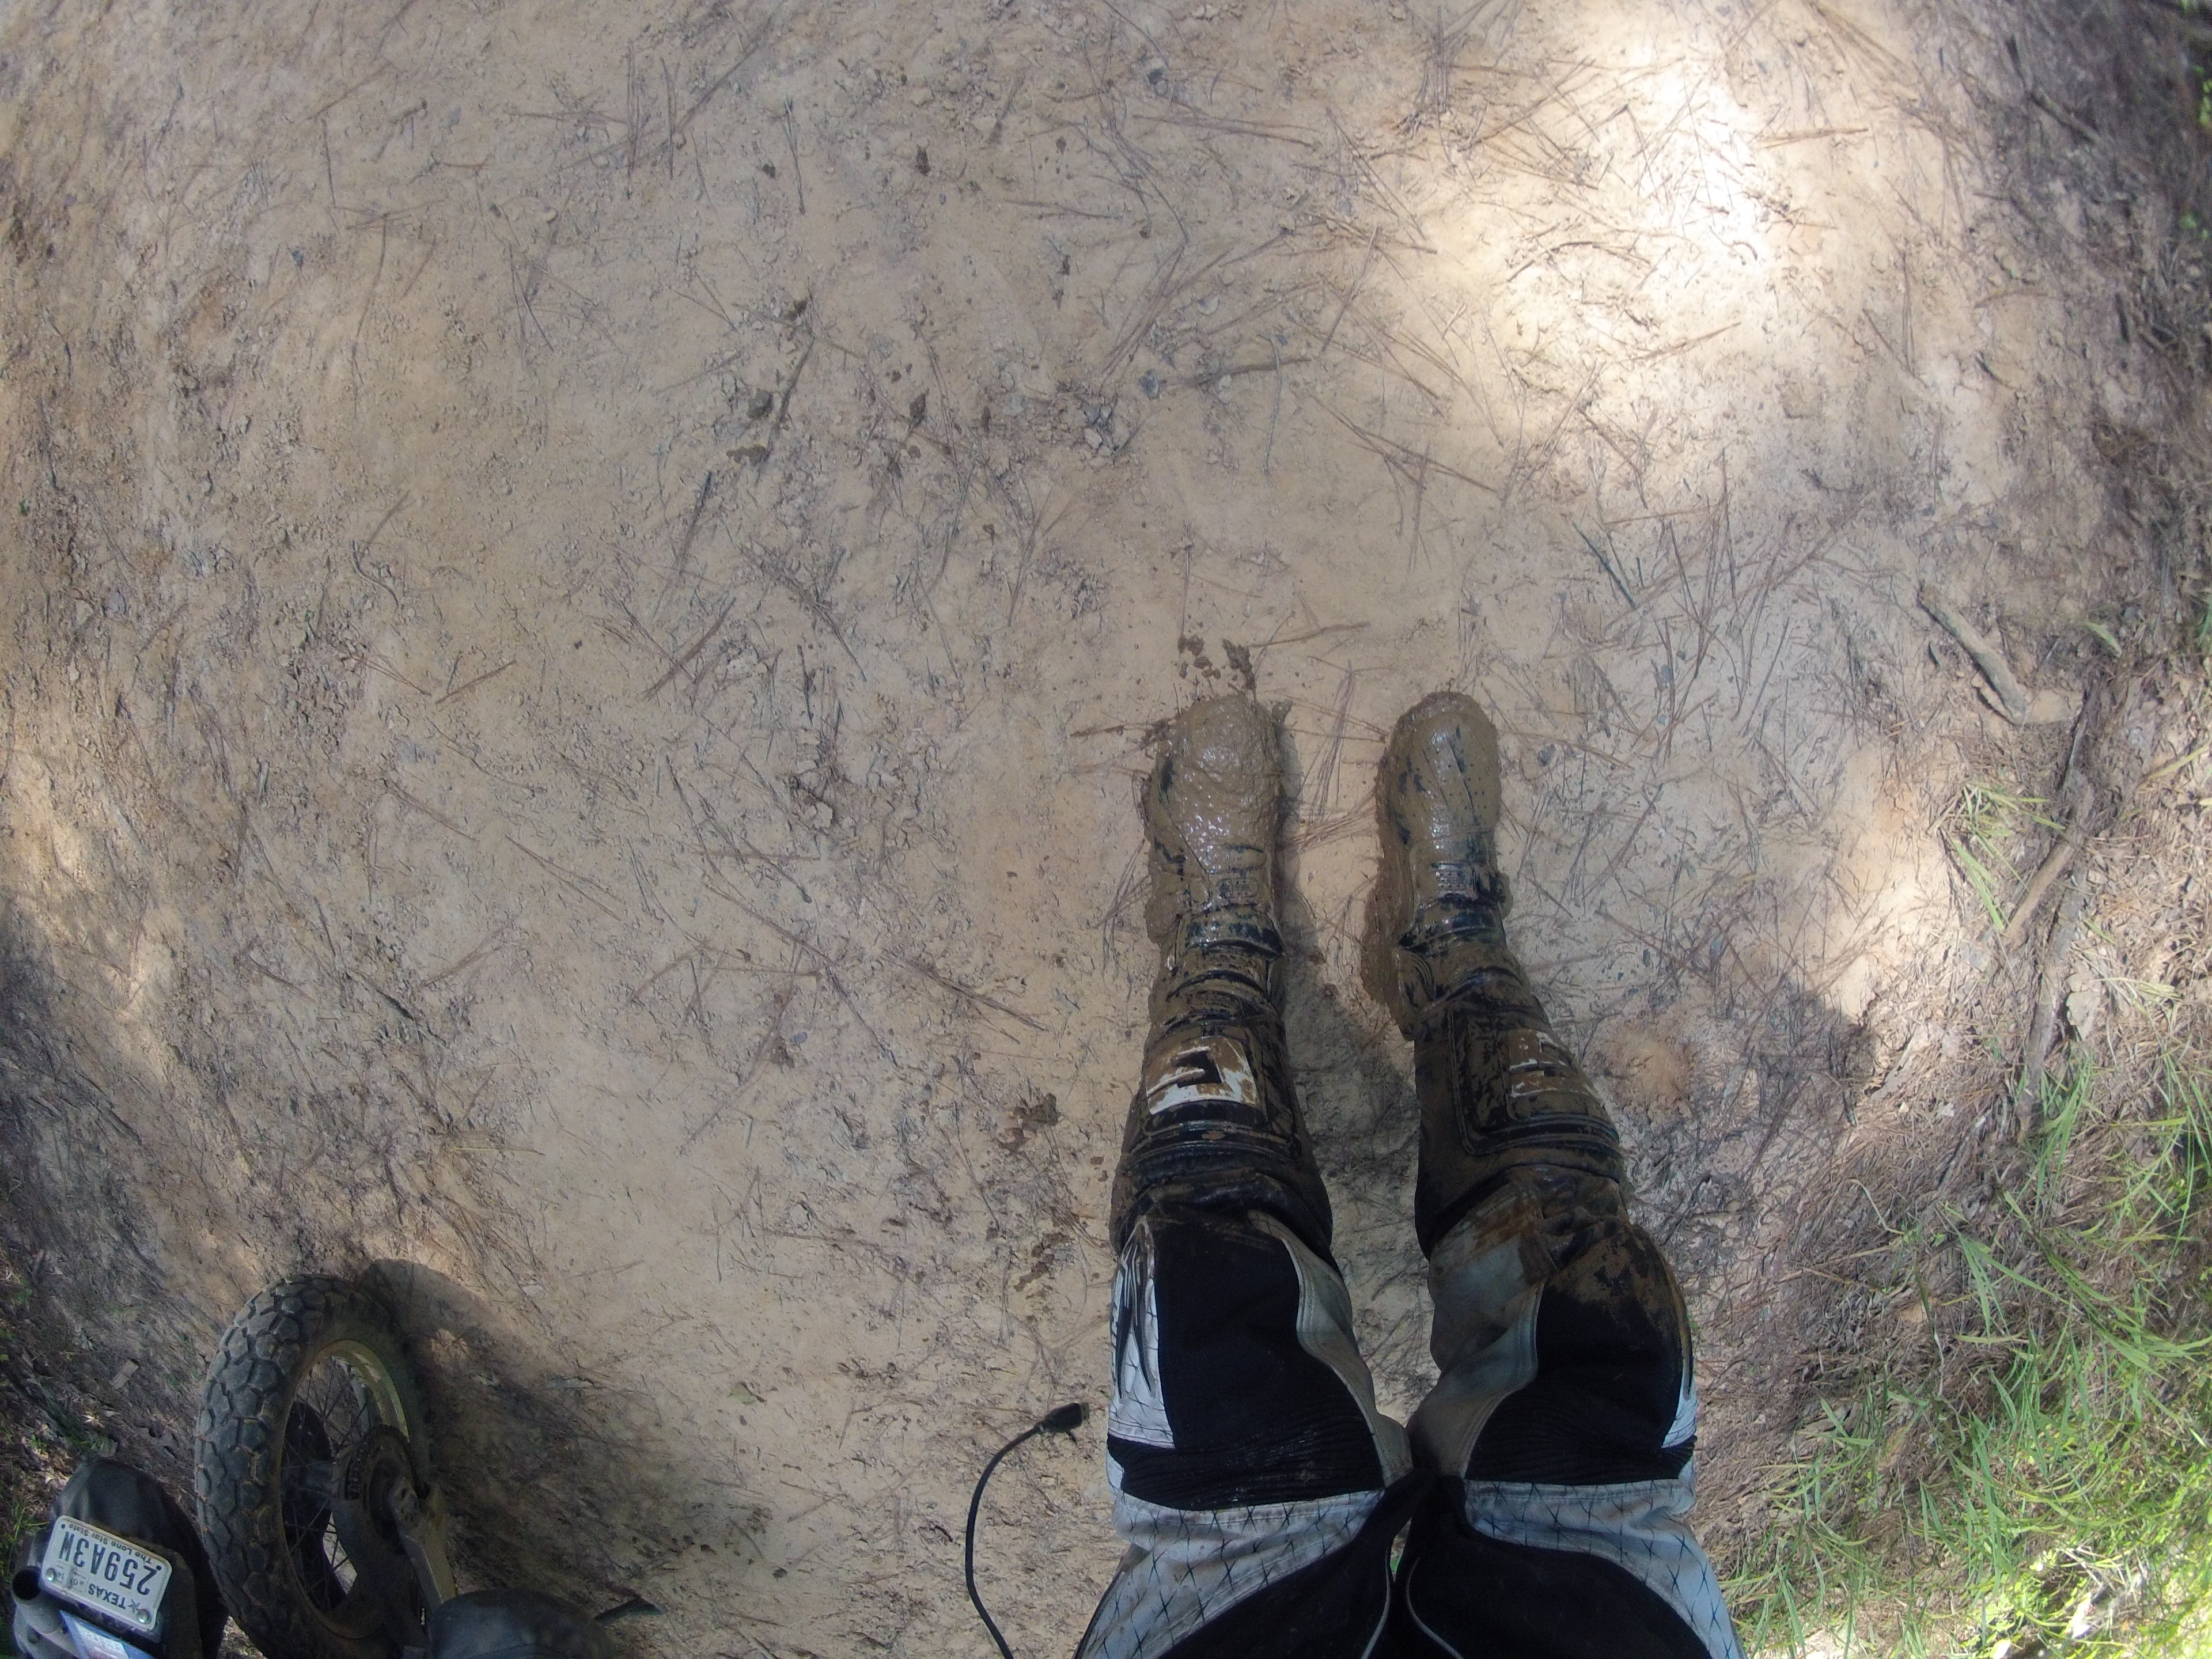 mud on my boots after falling in the mud hole